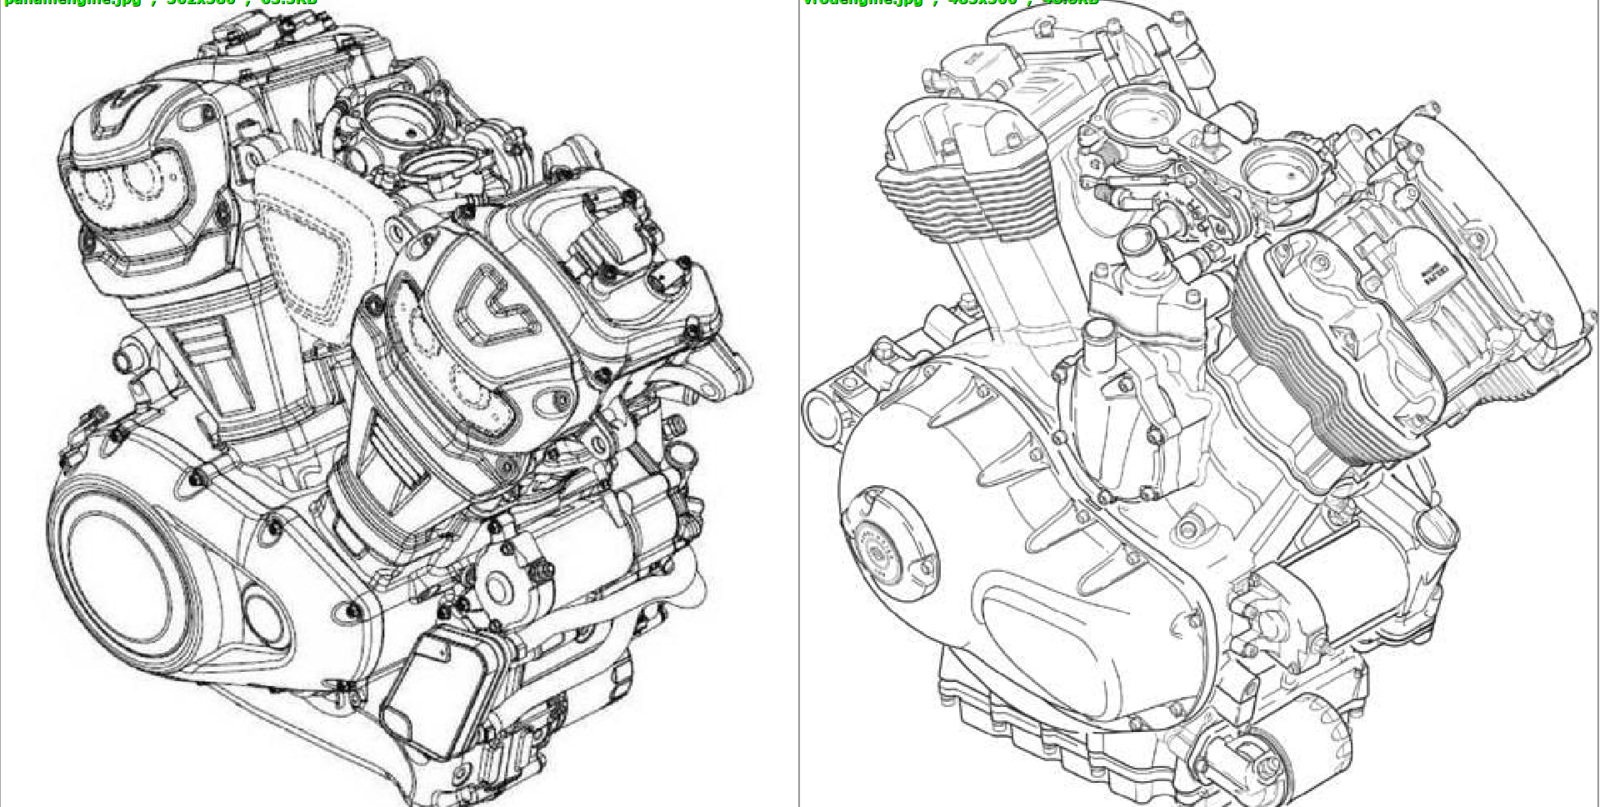 The Revolution Max and Revolution Harley Davidson engines side by side.